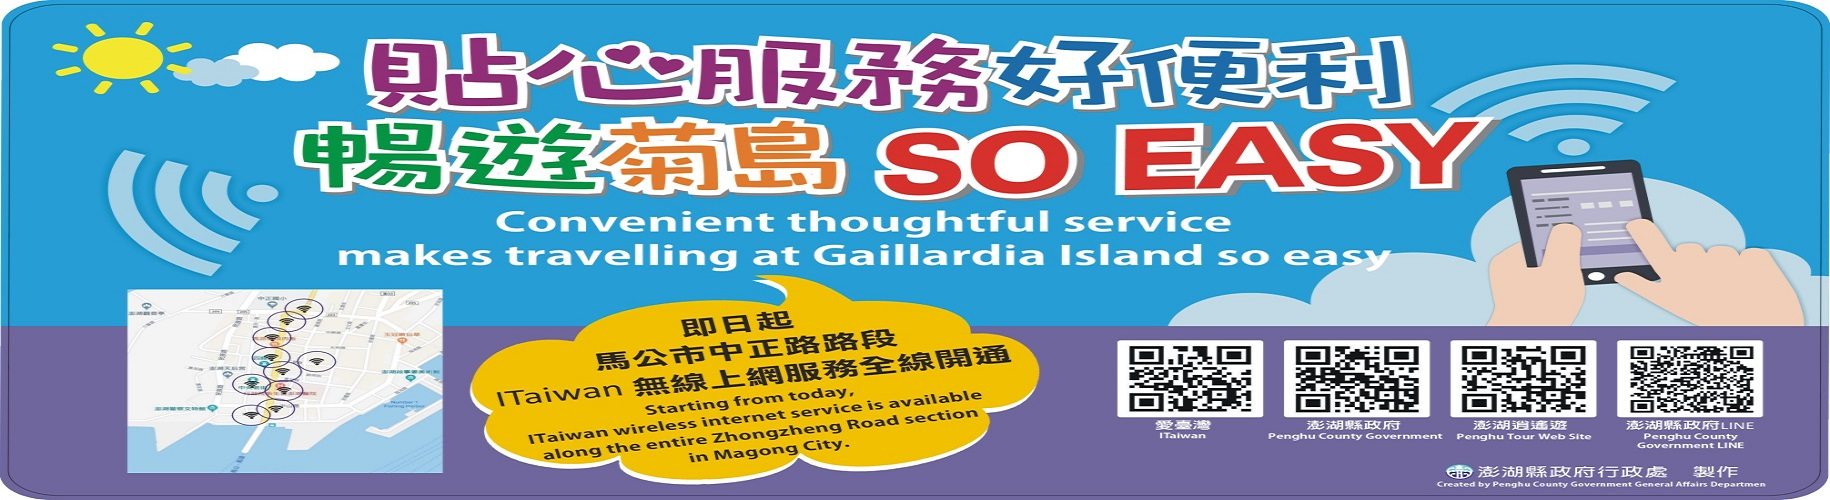 Convenient thoughtful service males travelling at Gaillardia island so easy(Open new window)